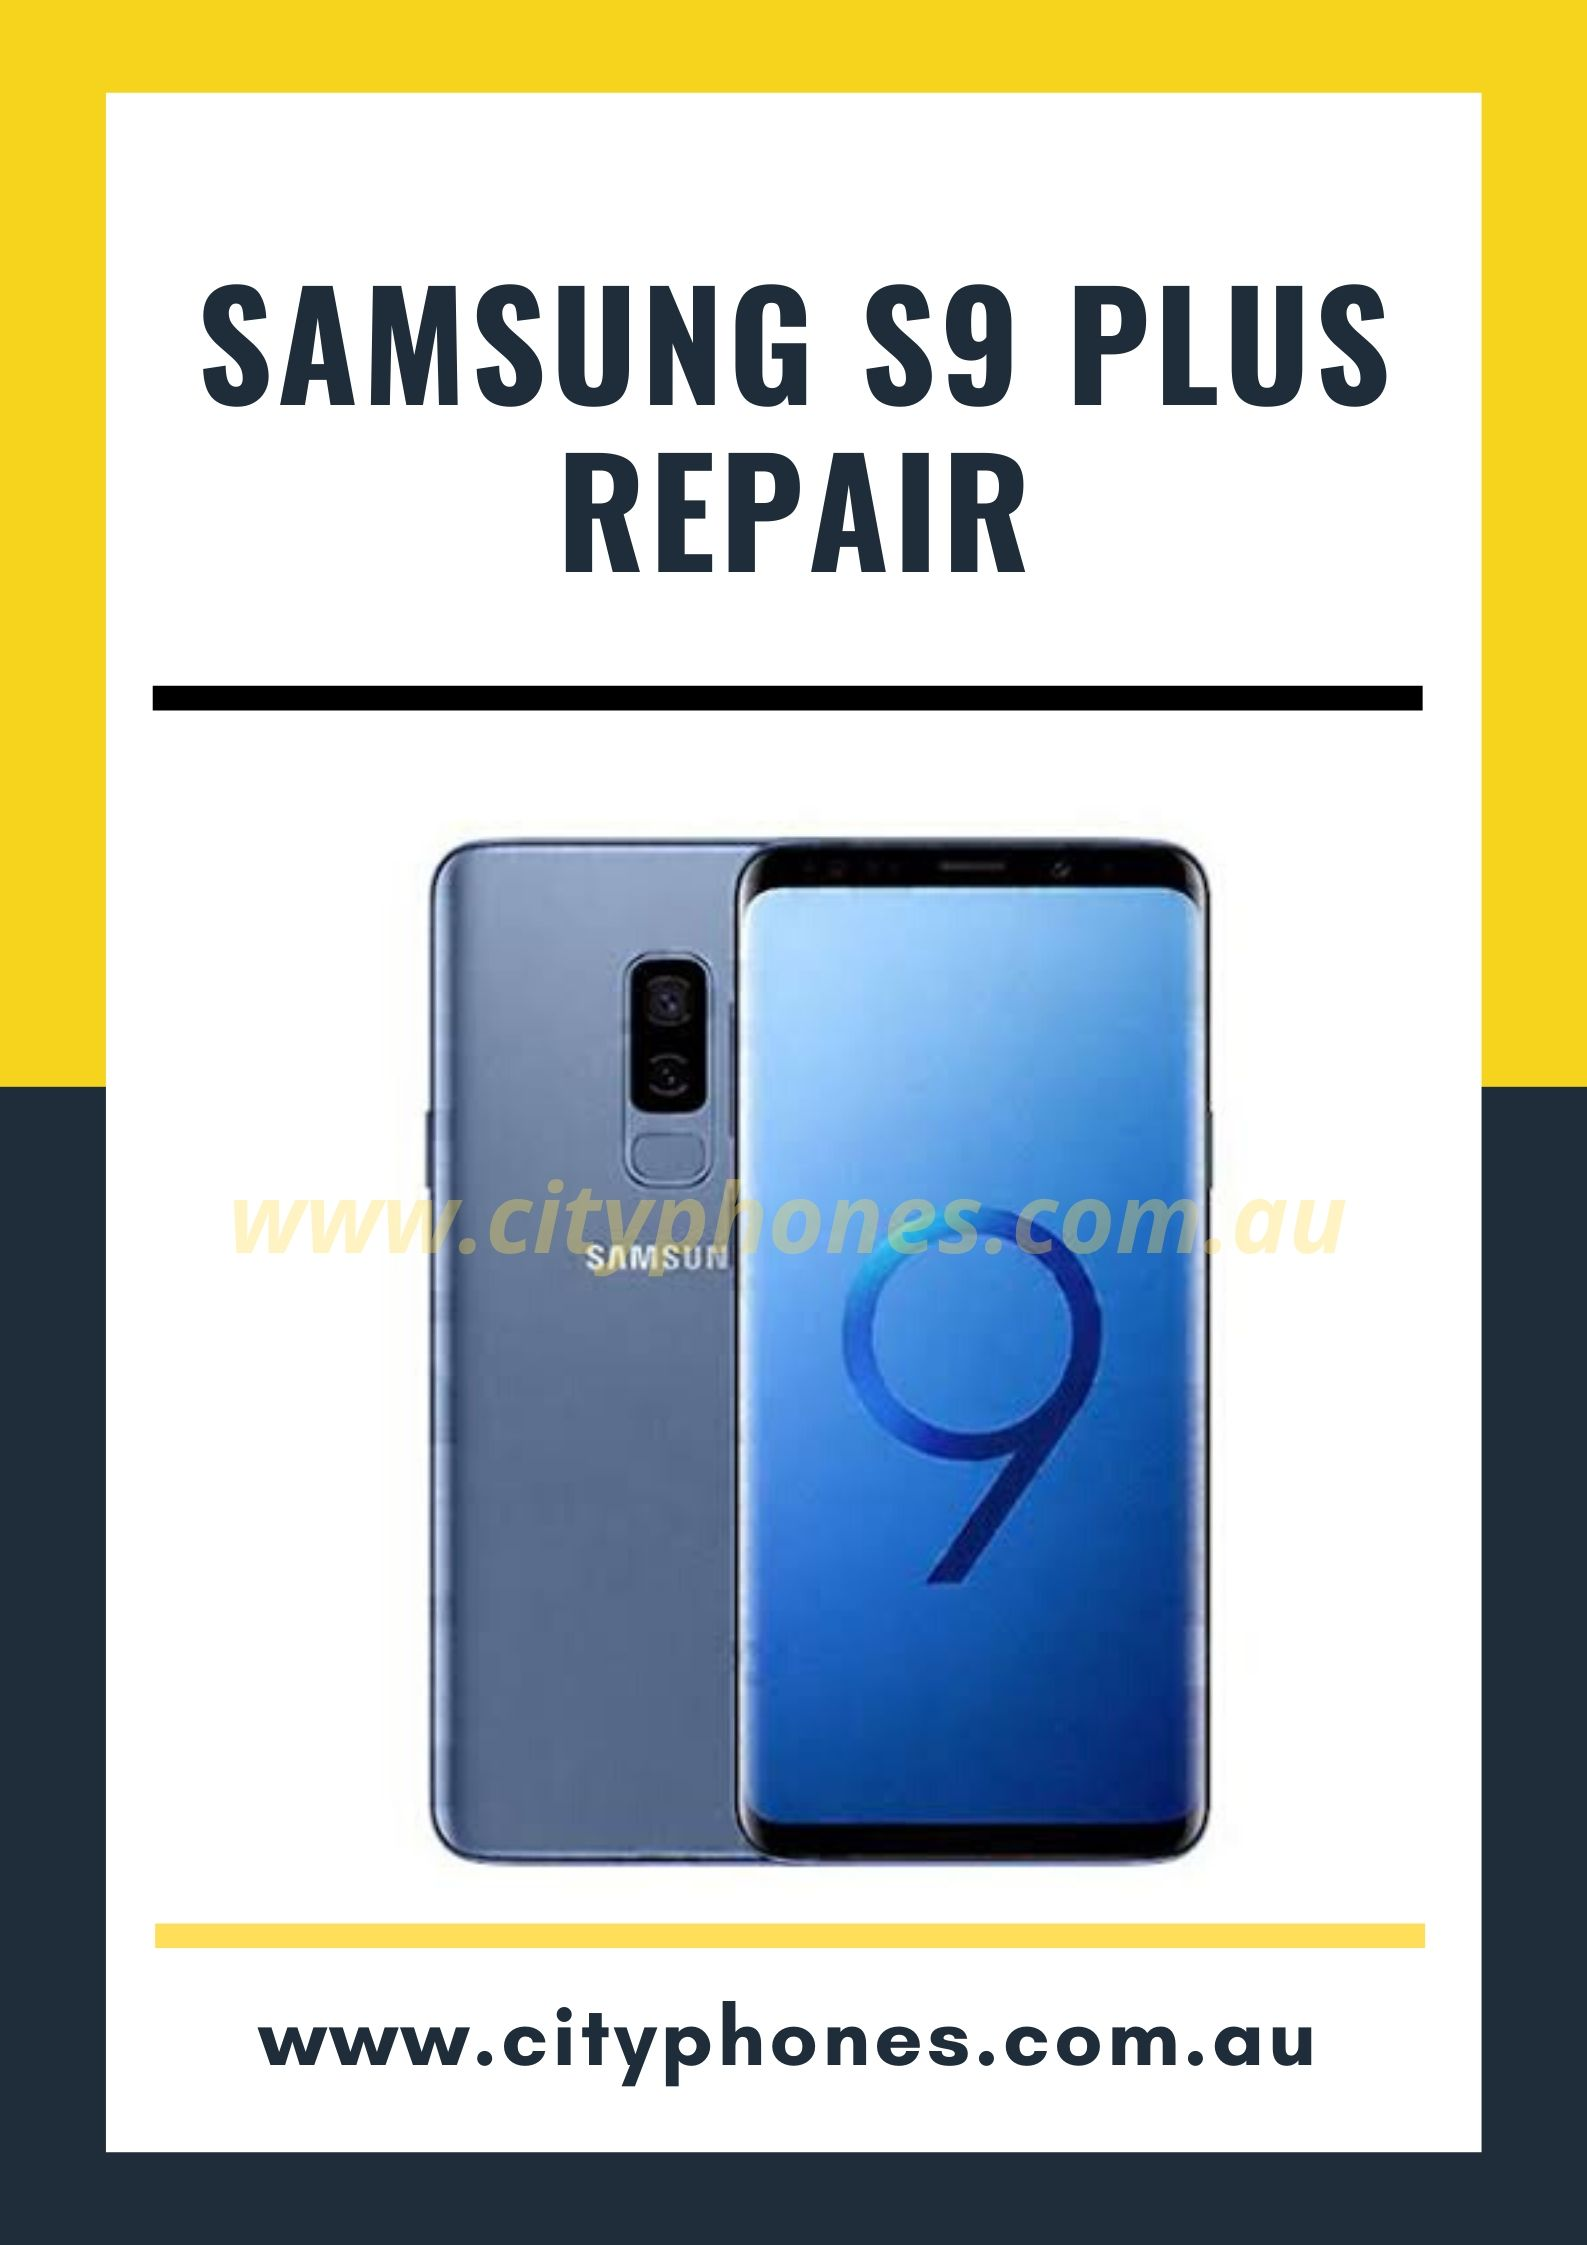 Samsung s9 plus screen repair